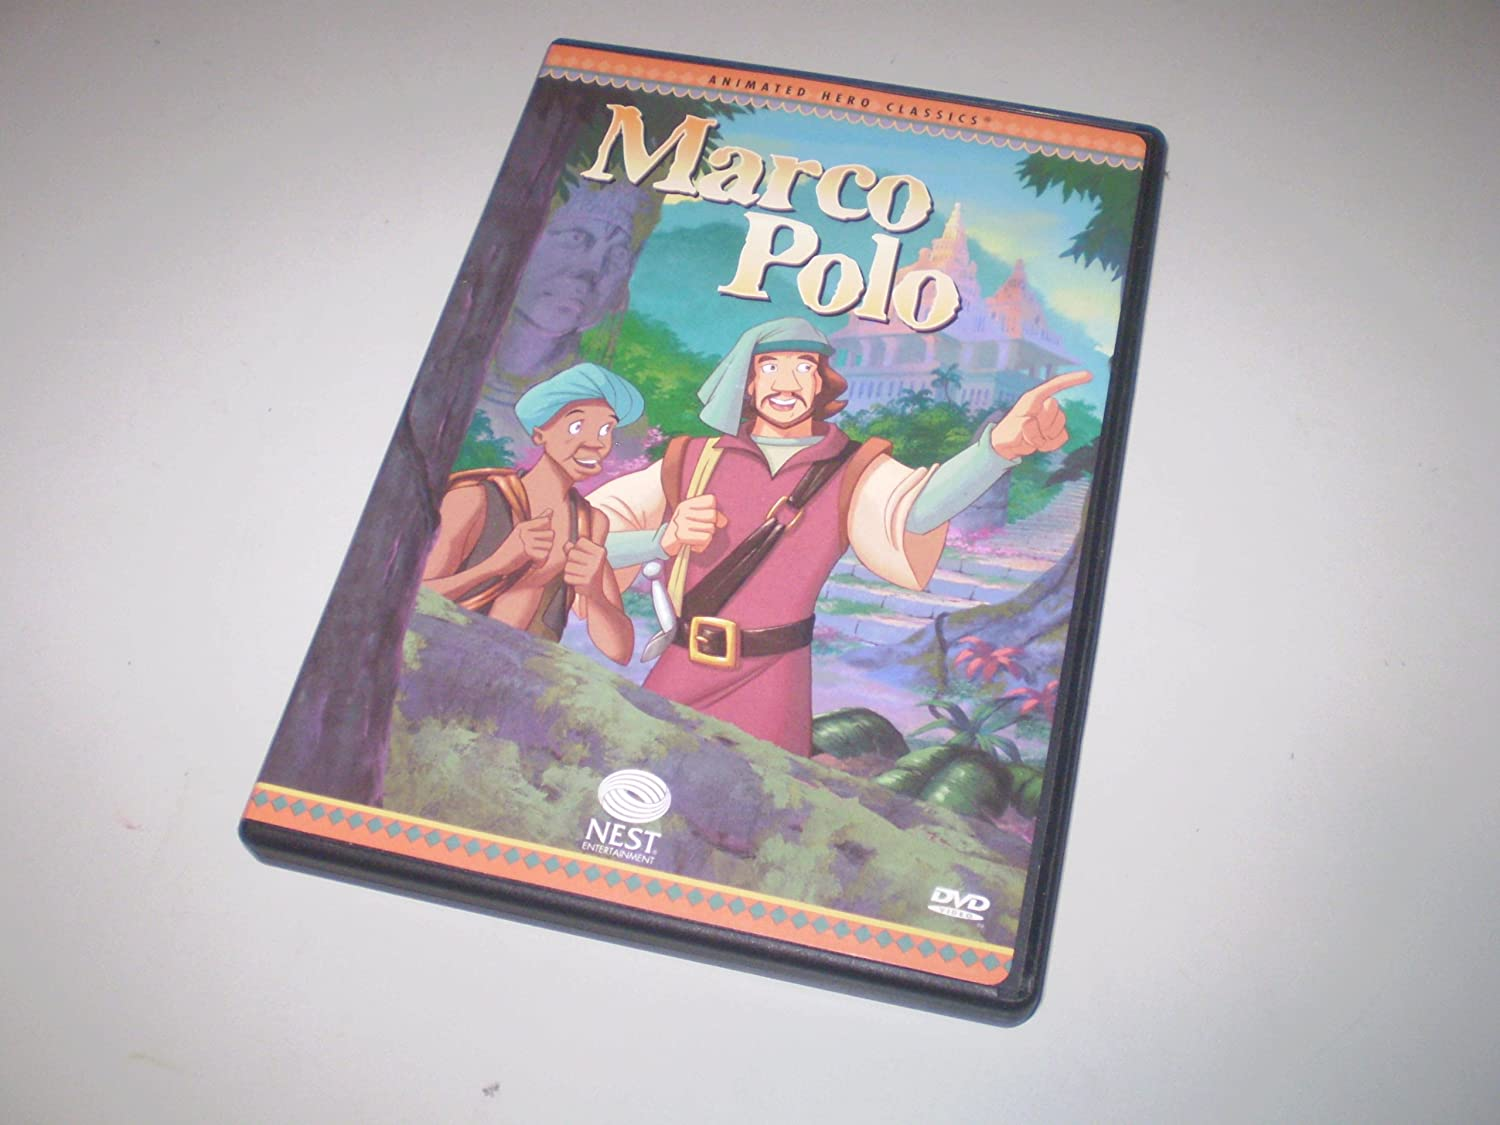 Marco Polo (Animated Hero Classics): Amazon.es: Cine y Series TV